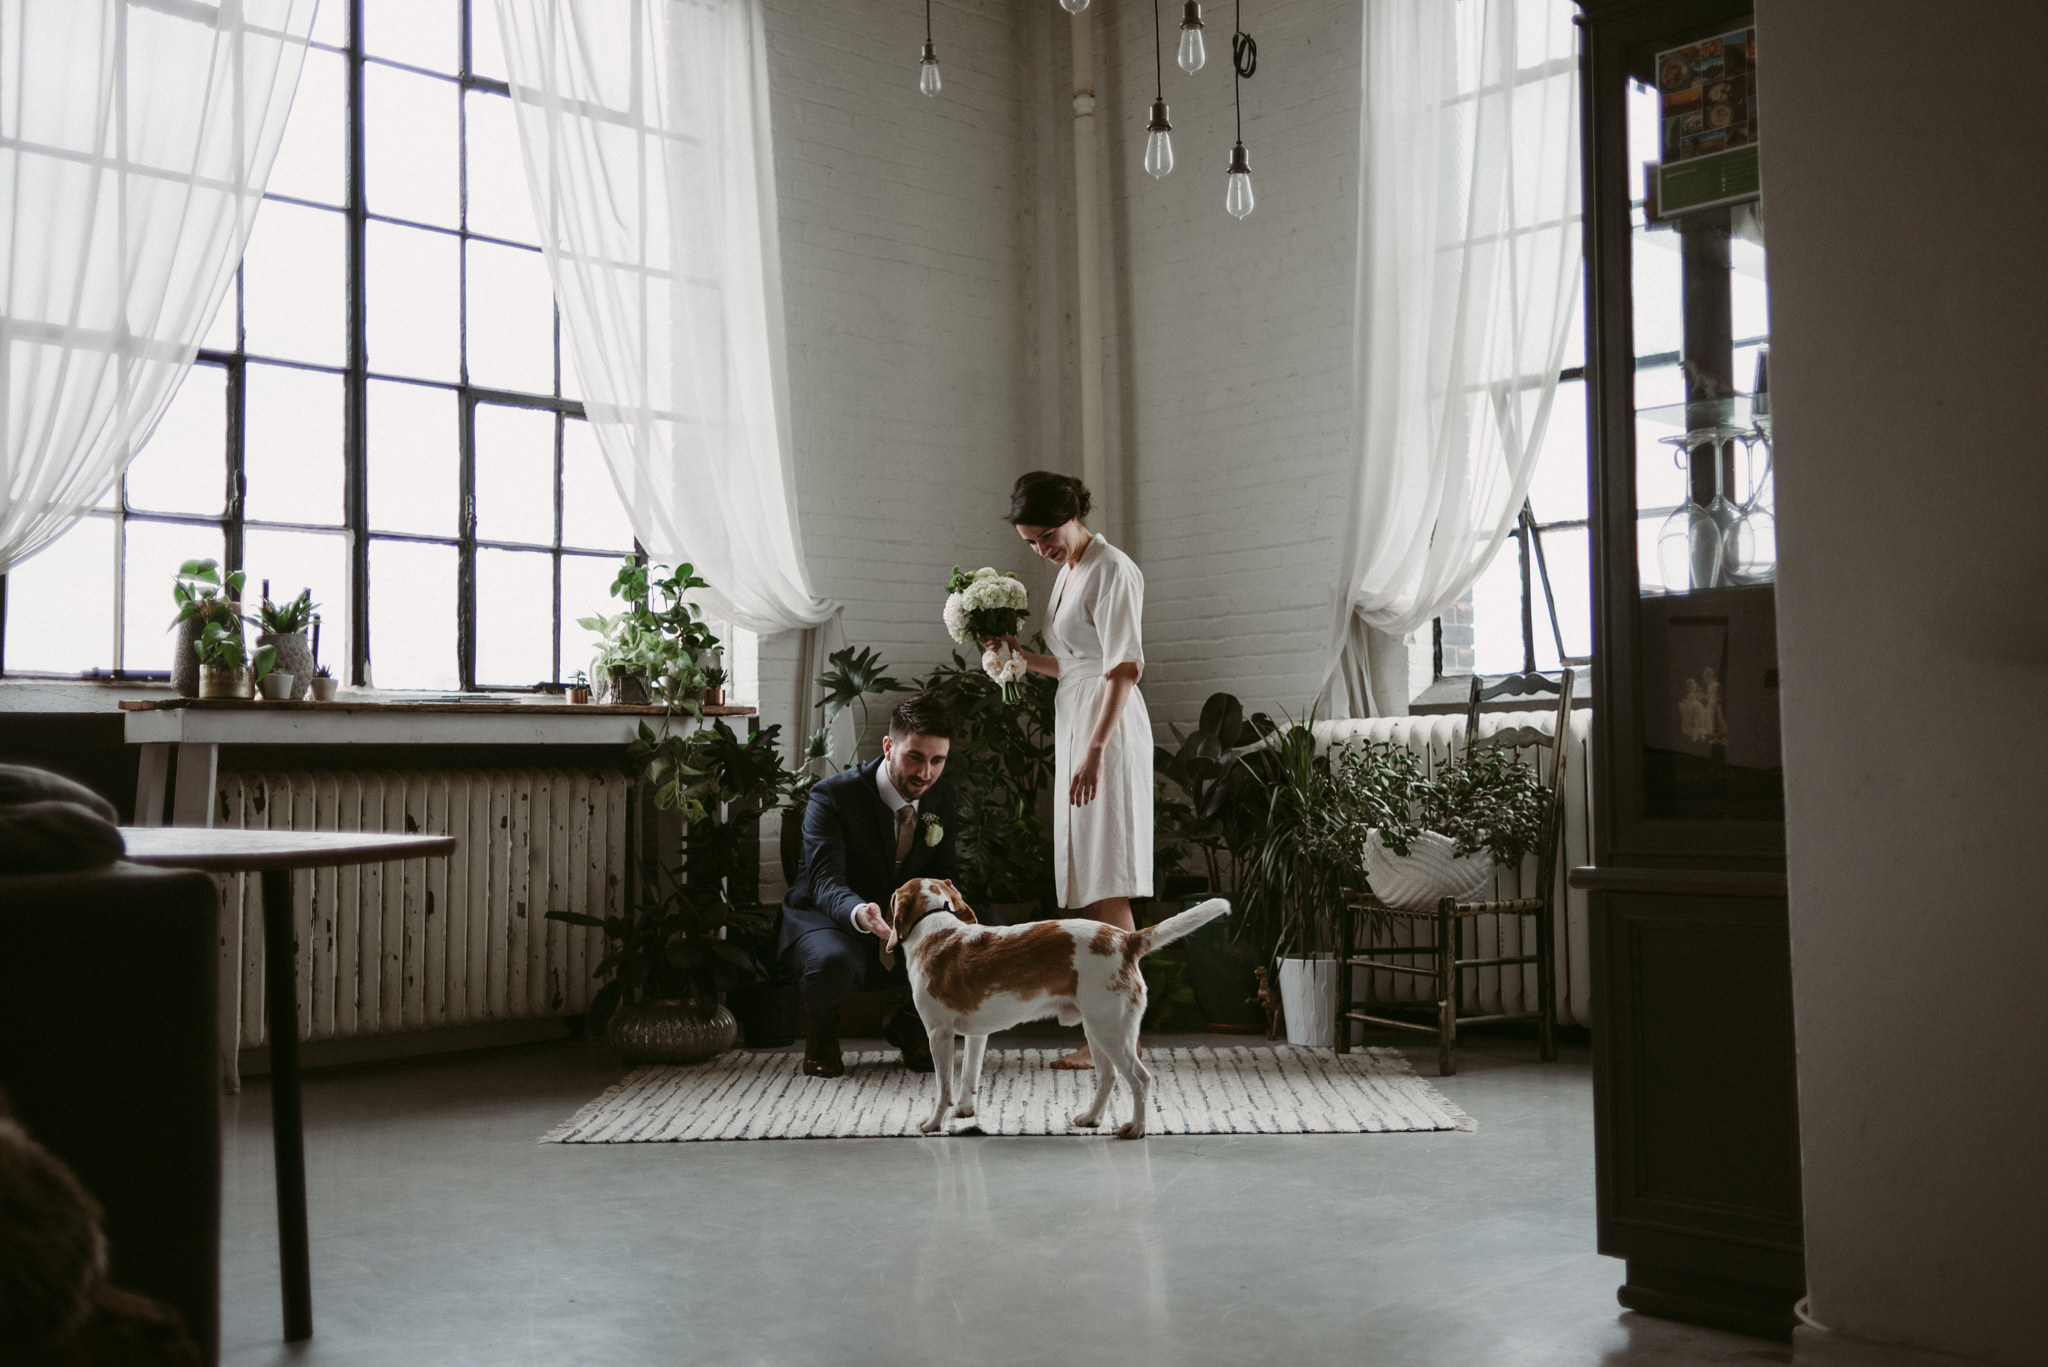 Bride and groom with dog in loft